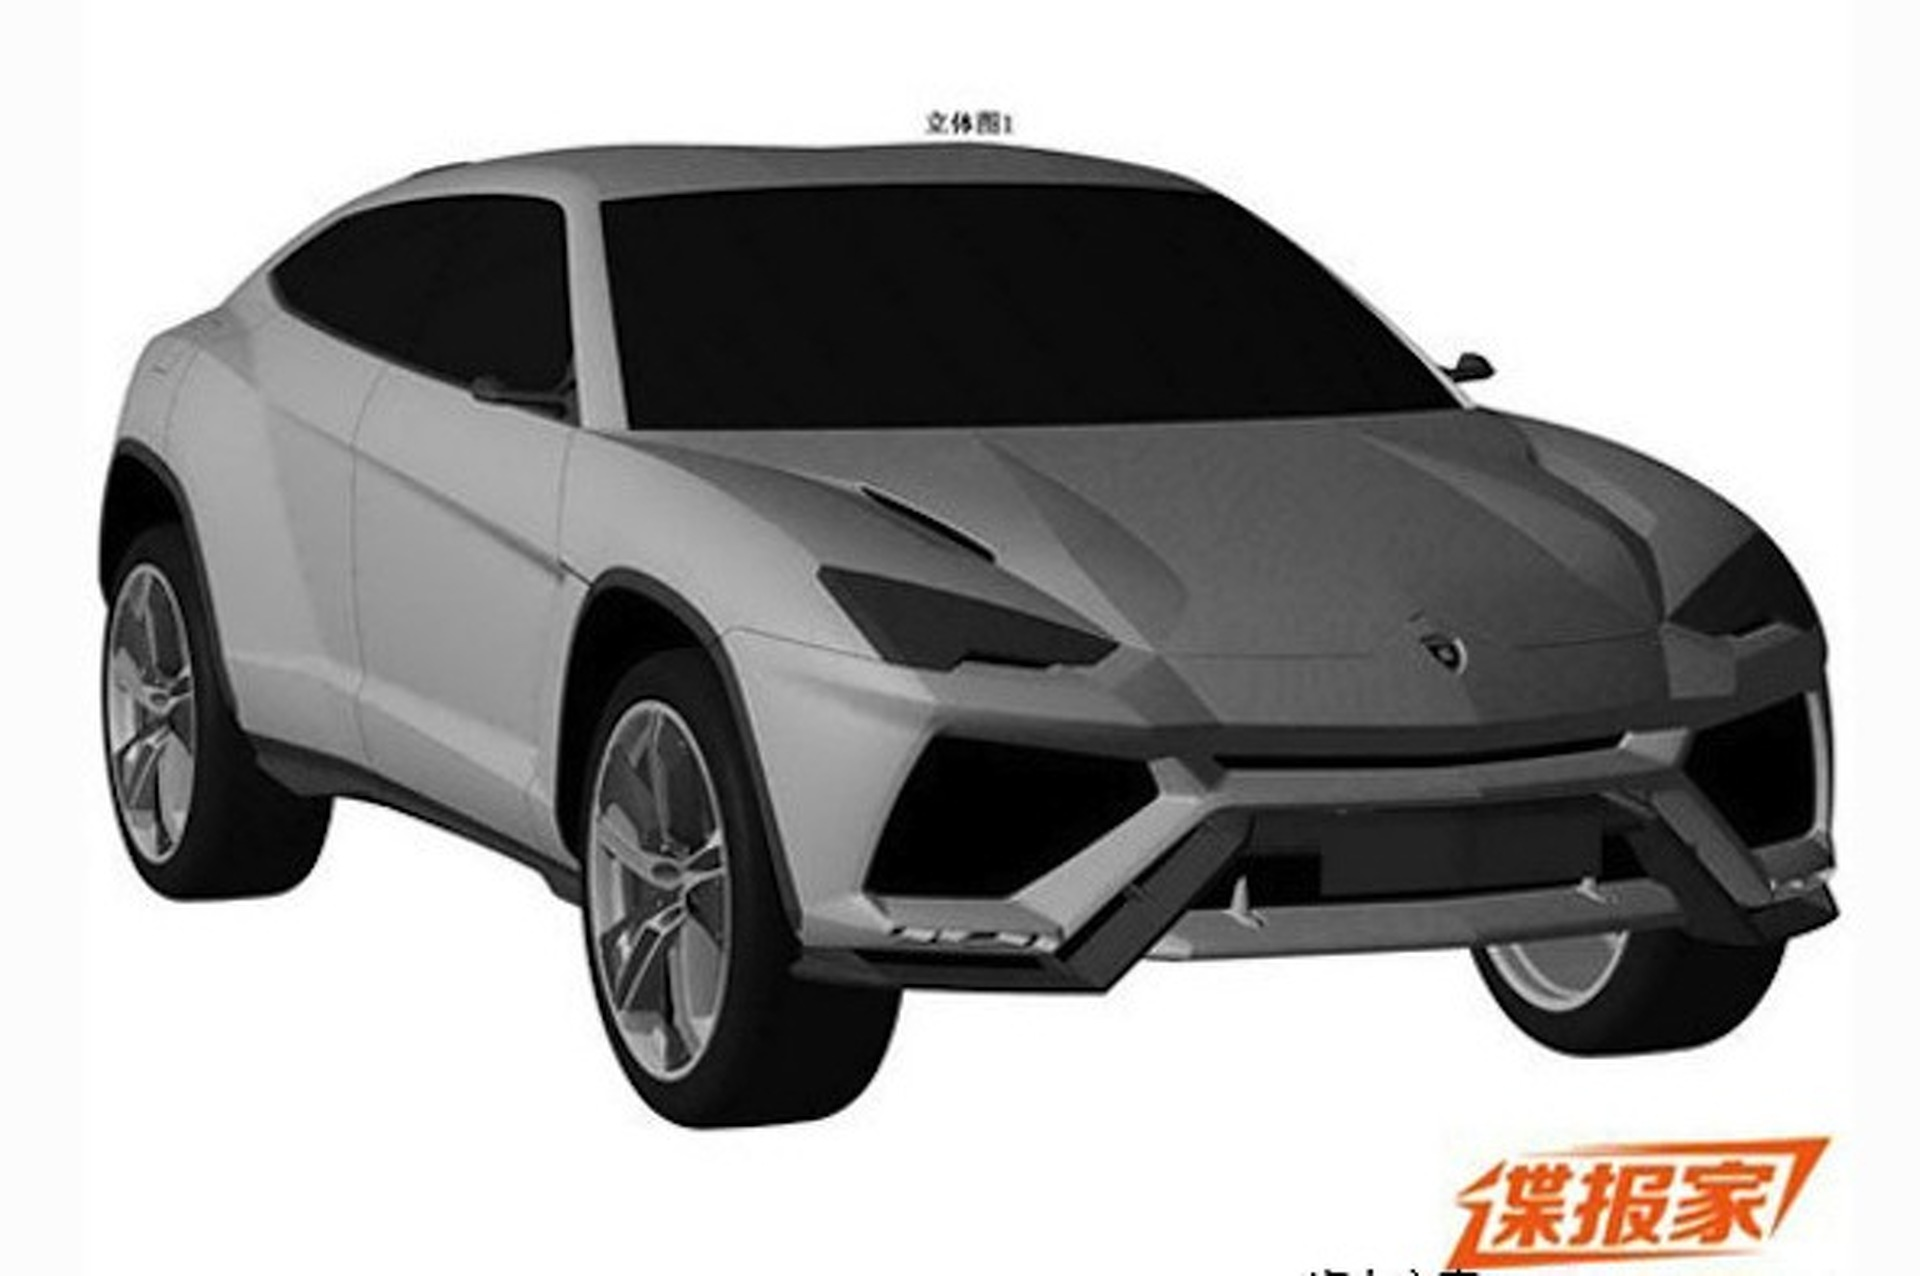 New Lamborghini Patent Filings Could Put Urus SUV Closer to Production